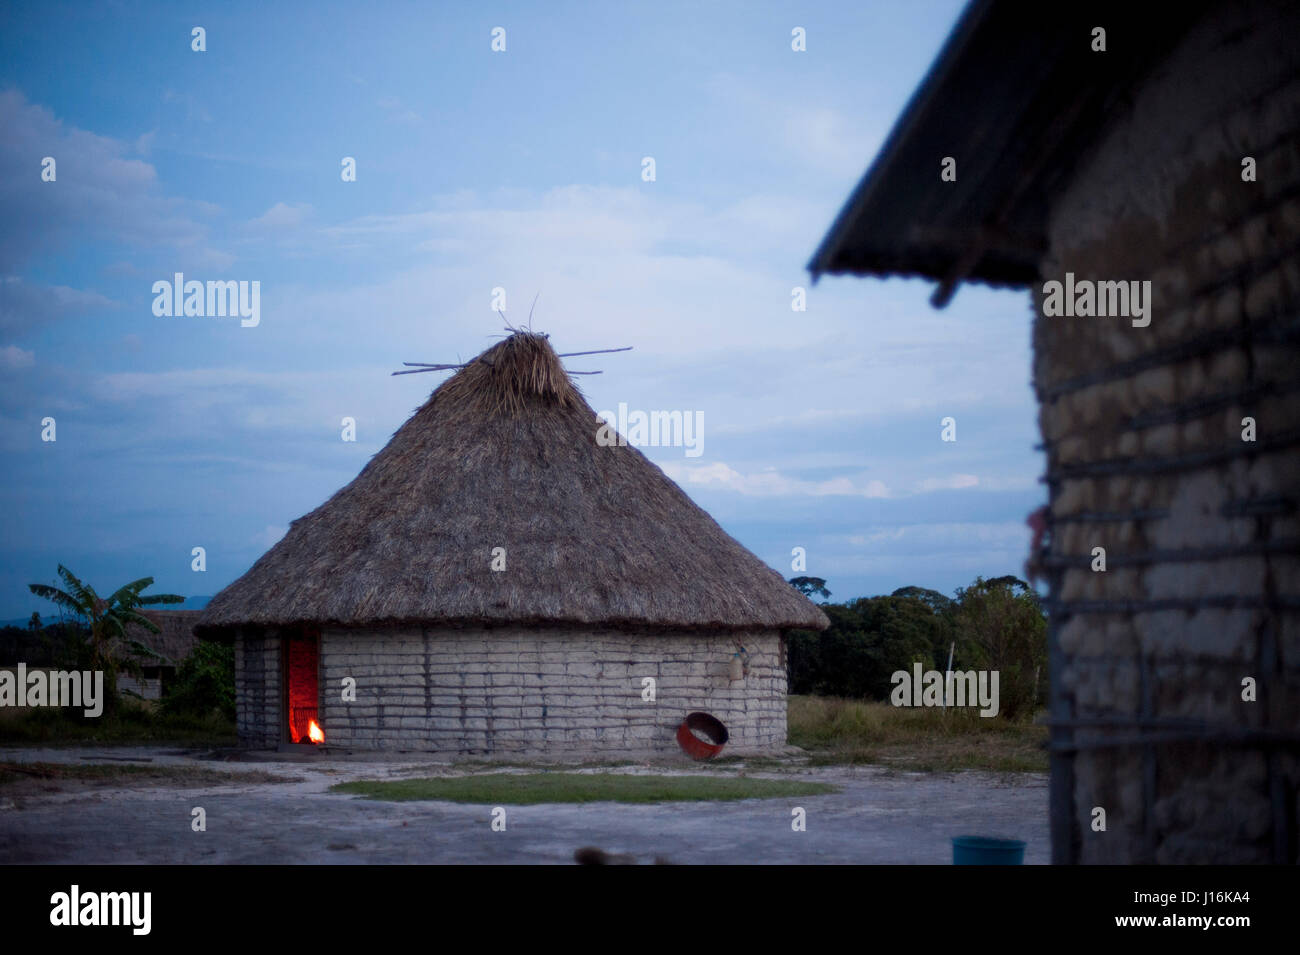 Mud Huts Village In Venezuela - Stock Image